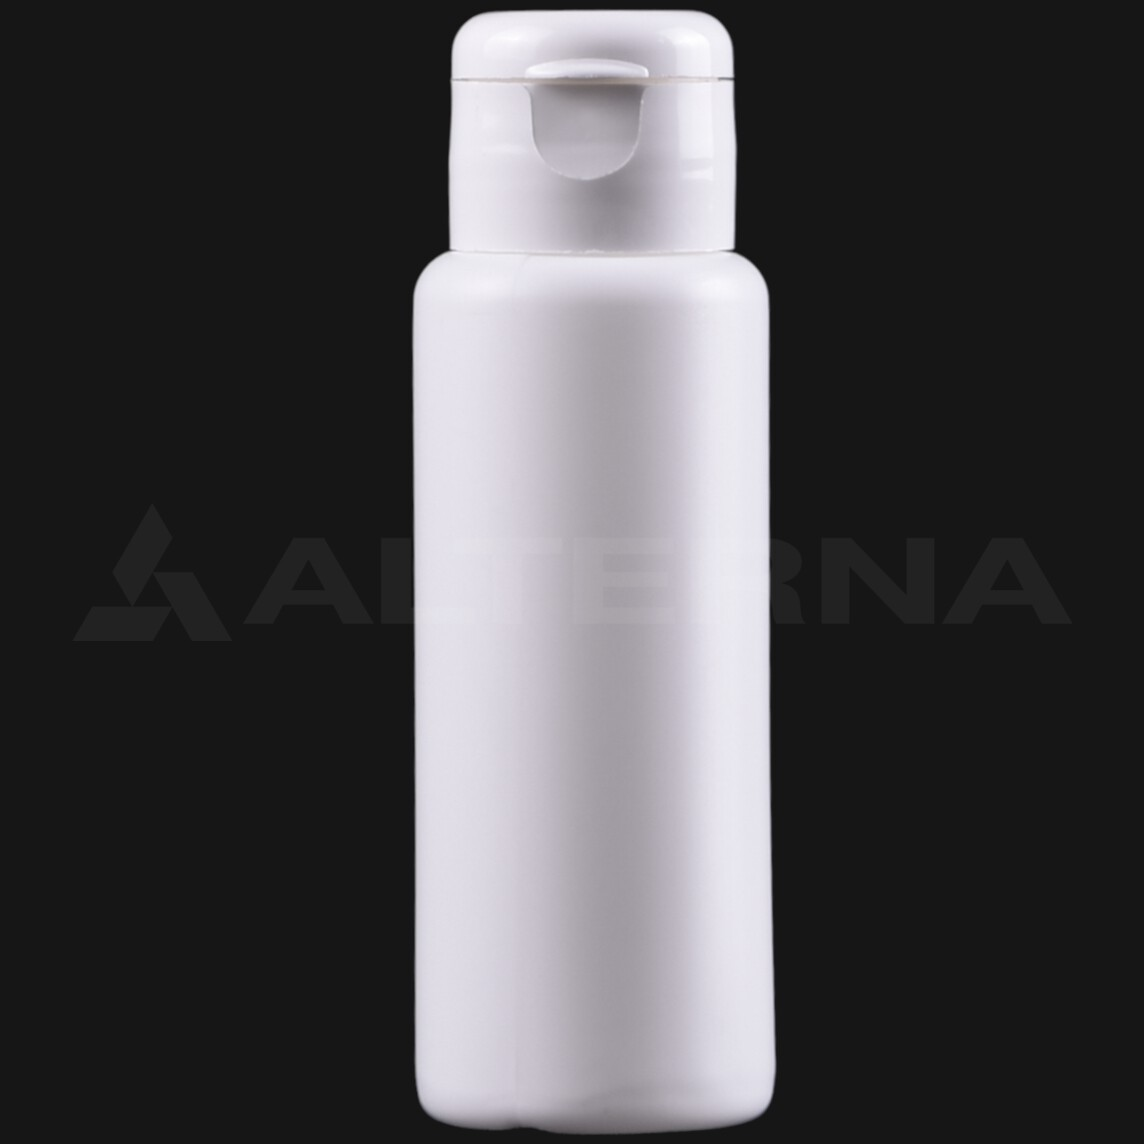 60 ml HDPE Bottle with 24 mm Flip Top Cap